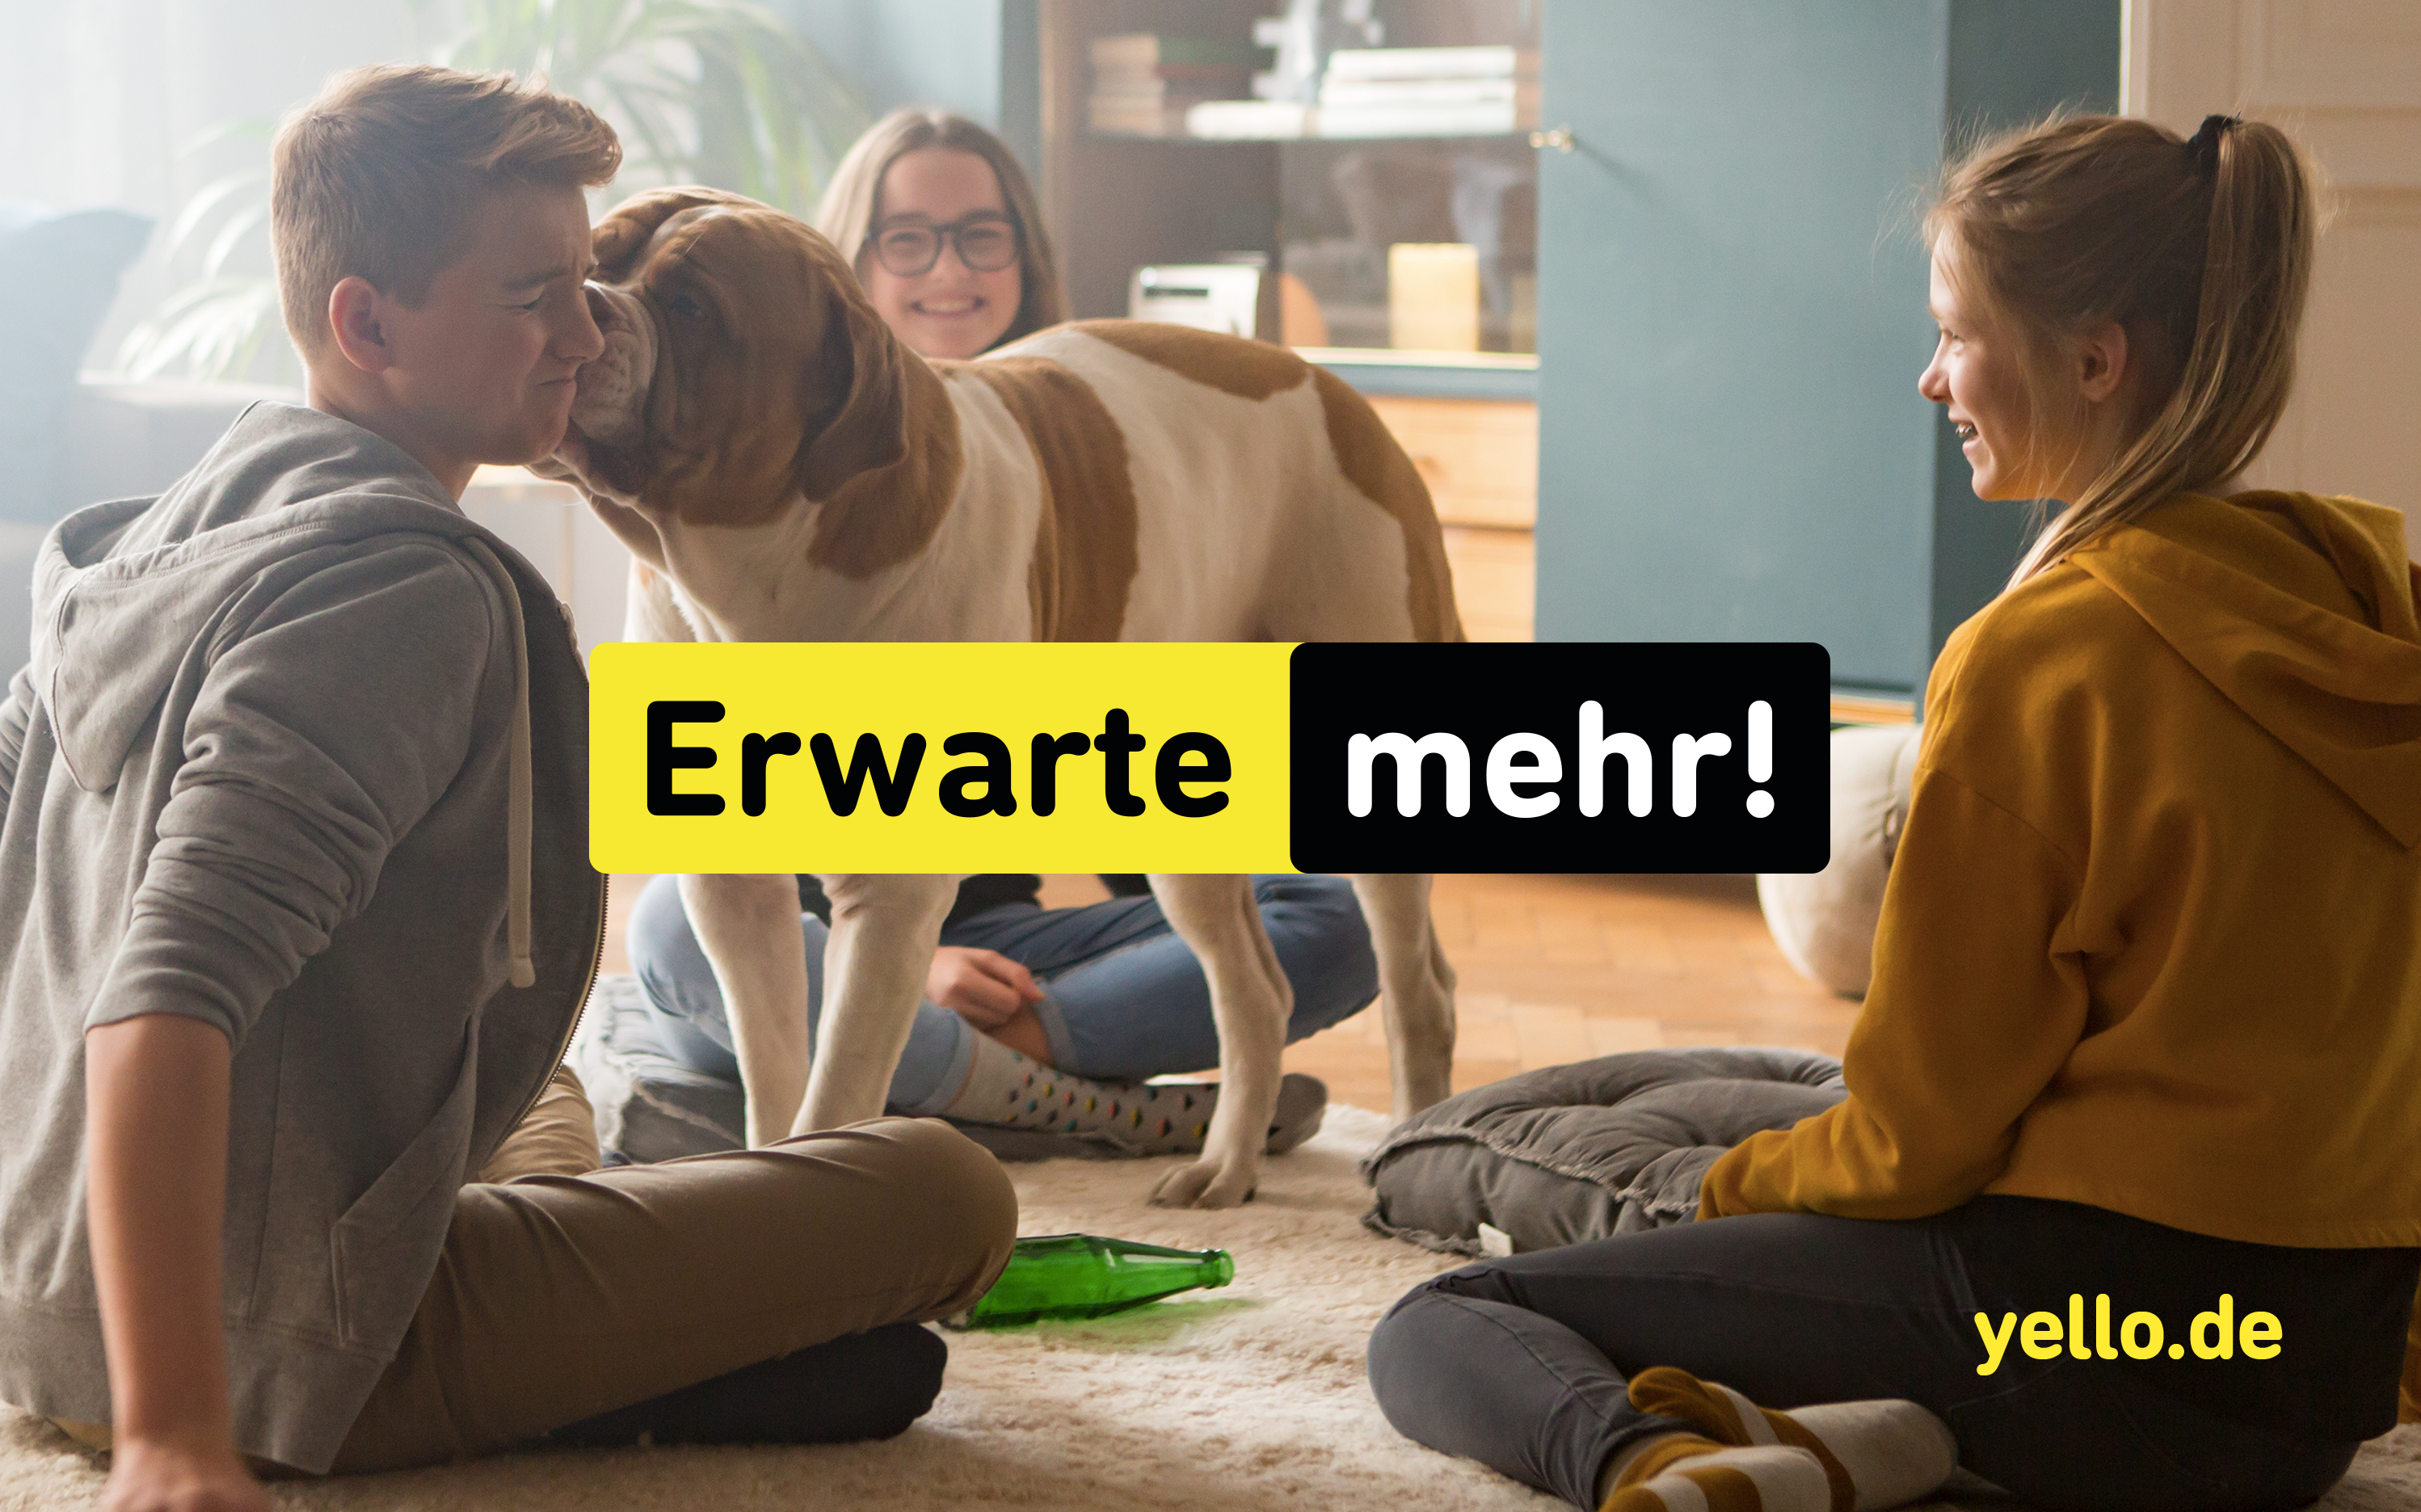 Yello bricht alle Erwartungen.